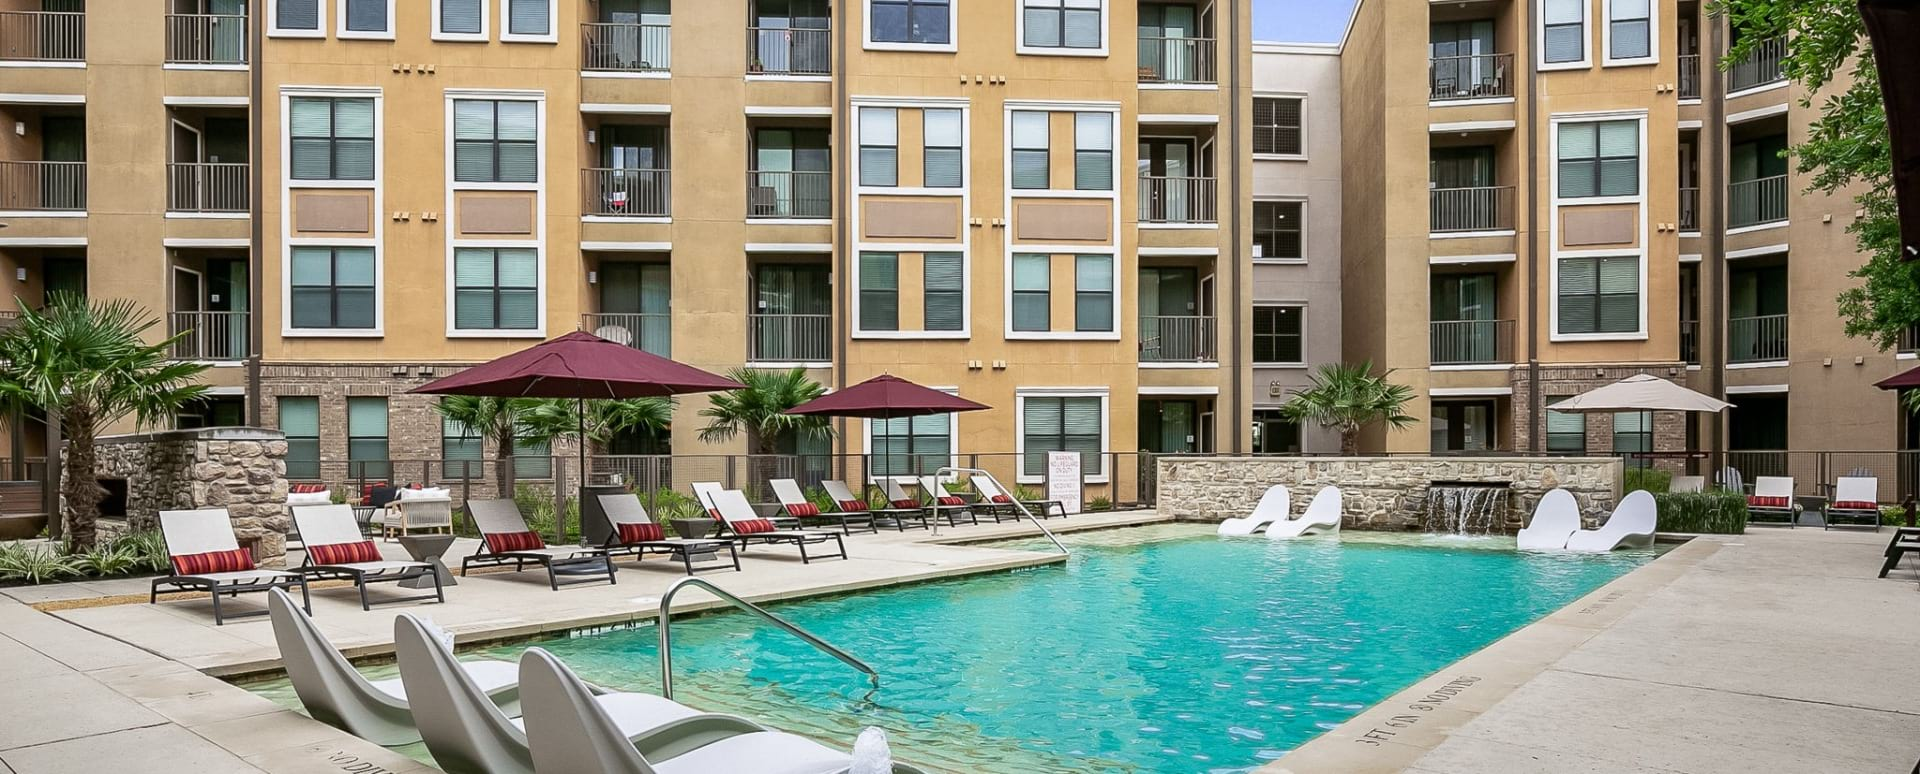 Stonebriar of Frisco apartments with pools